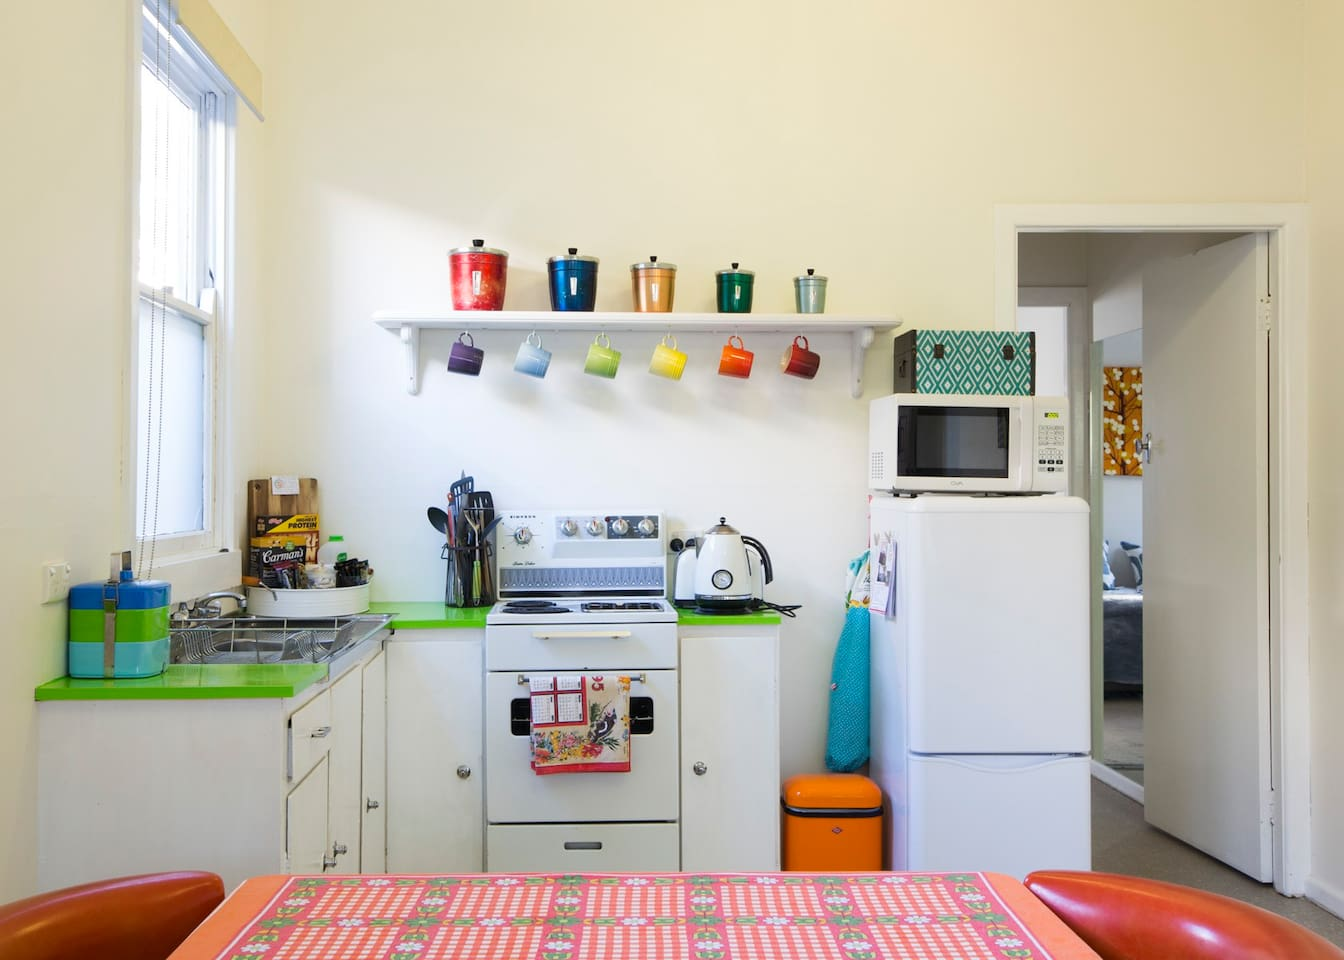 Like a stay at nanas.  Bright, cosy and nostalgic.  We have loved decorating Retro Granny BnB but aren't precious about it.  You and your kids are welcome here.